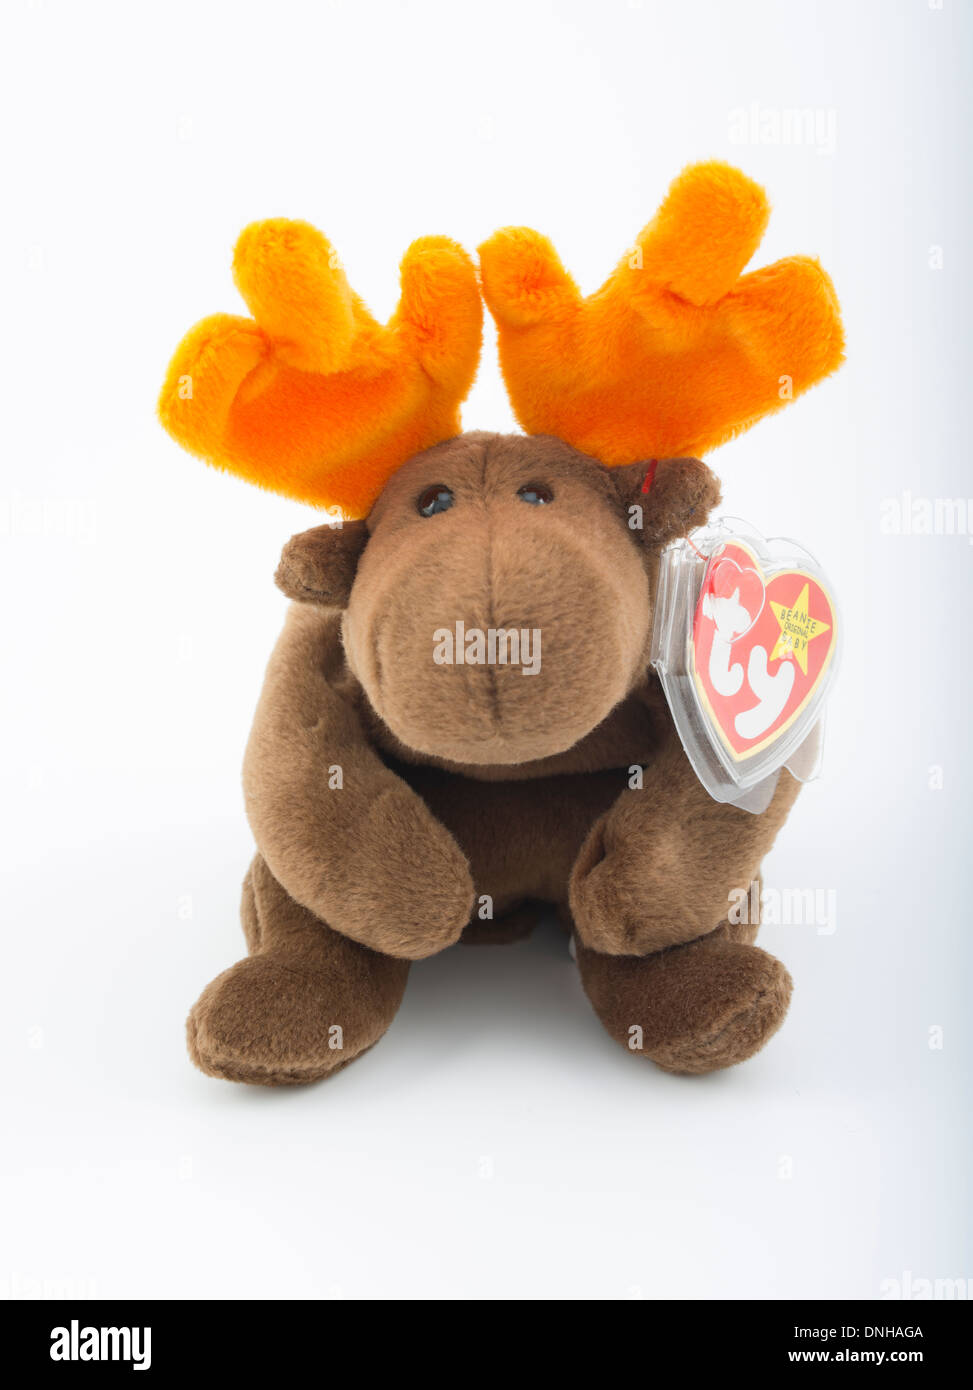 first generation 1993 Beanie Babies - Chocolate the Moose 2609617f1cc